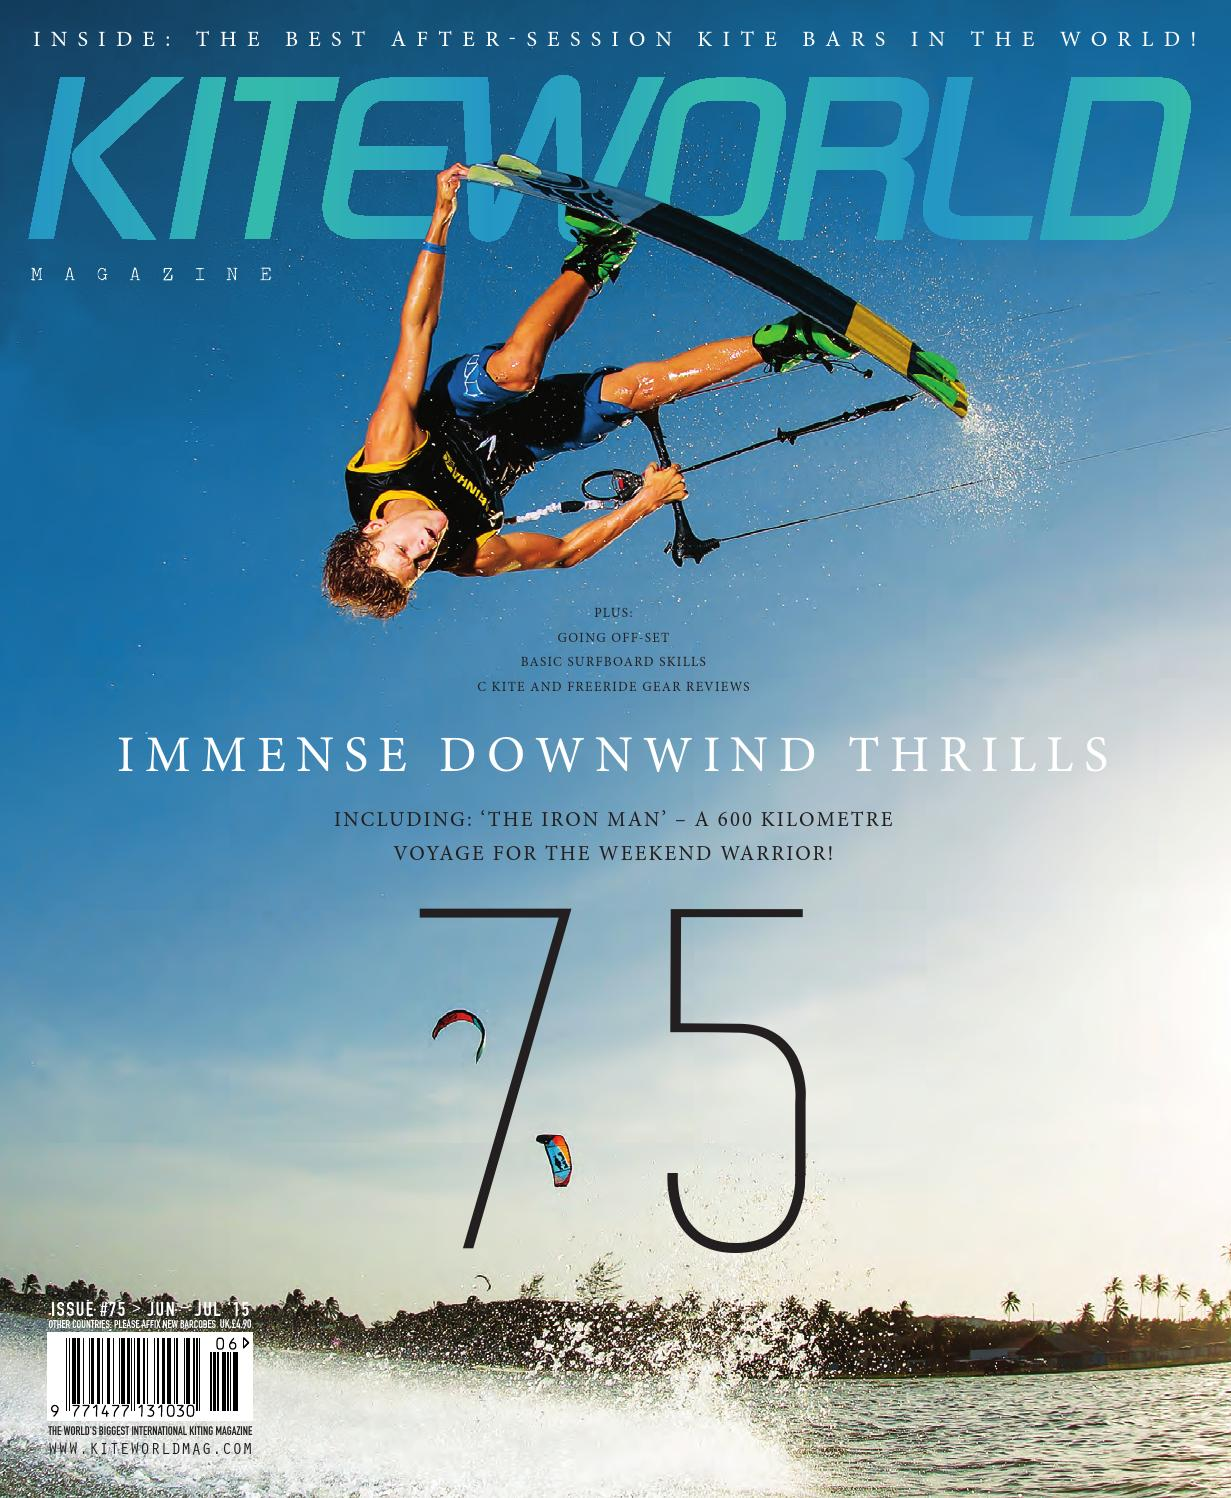 KITE MAGAZINE EPUB